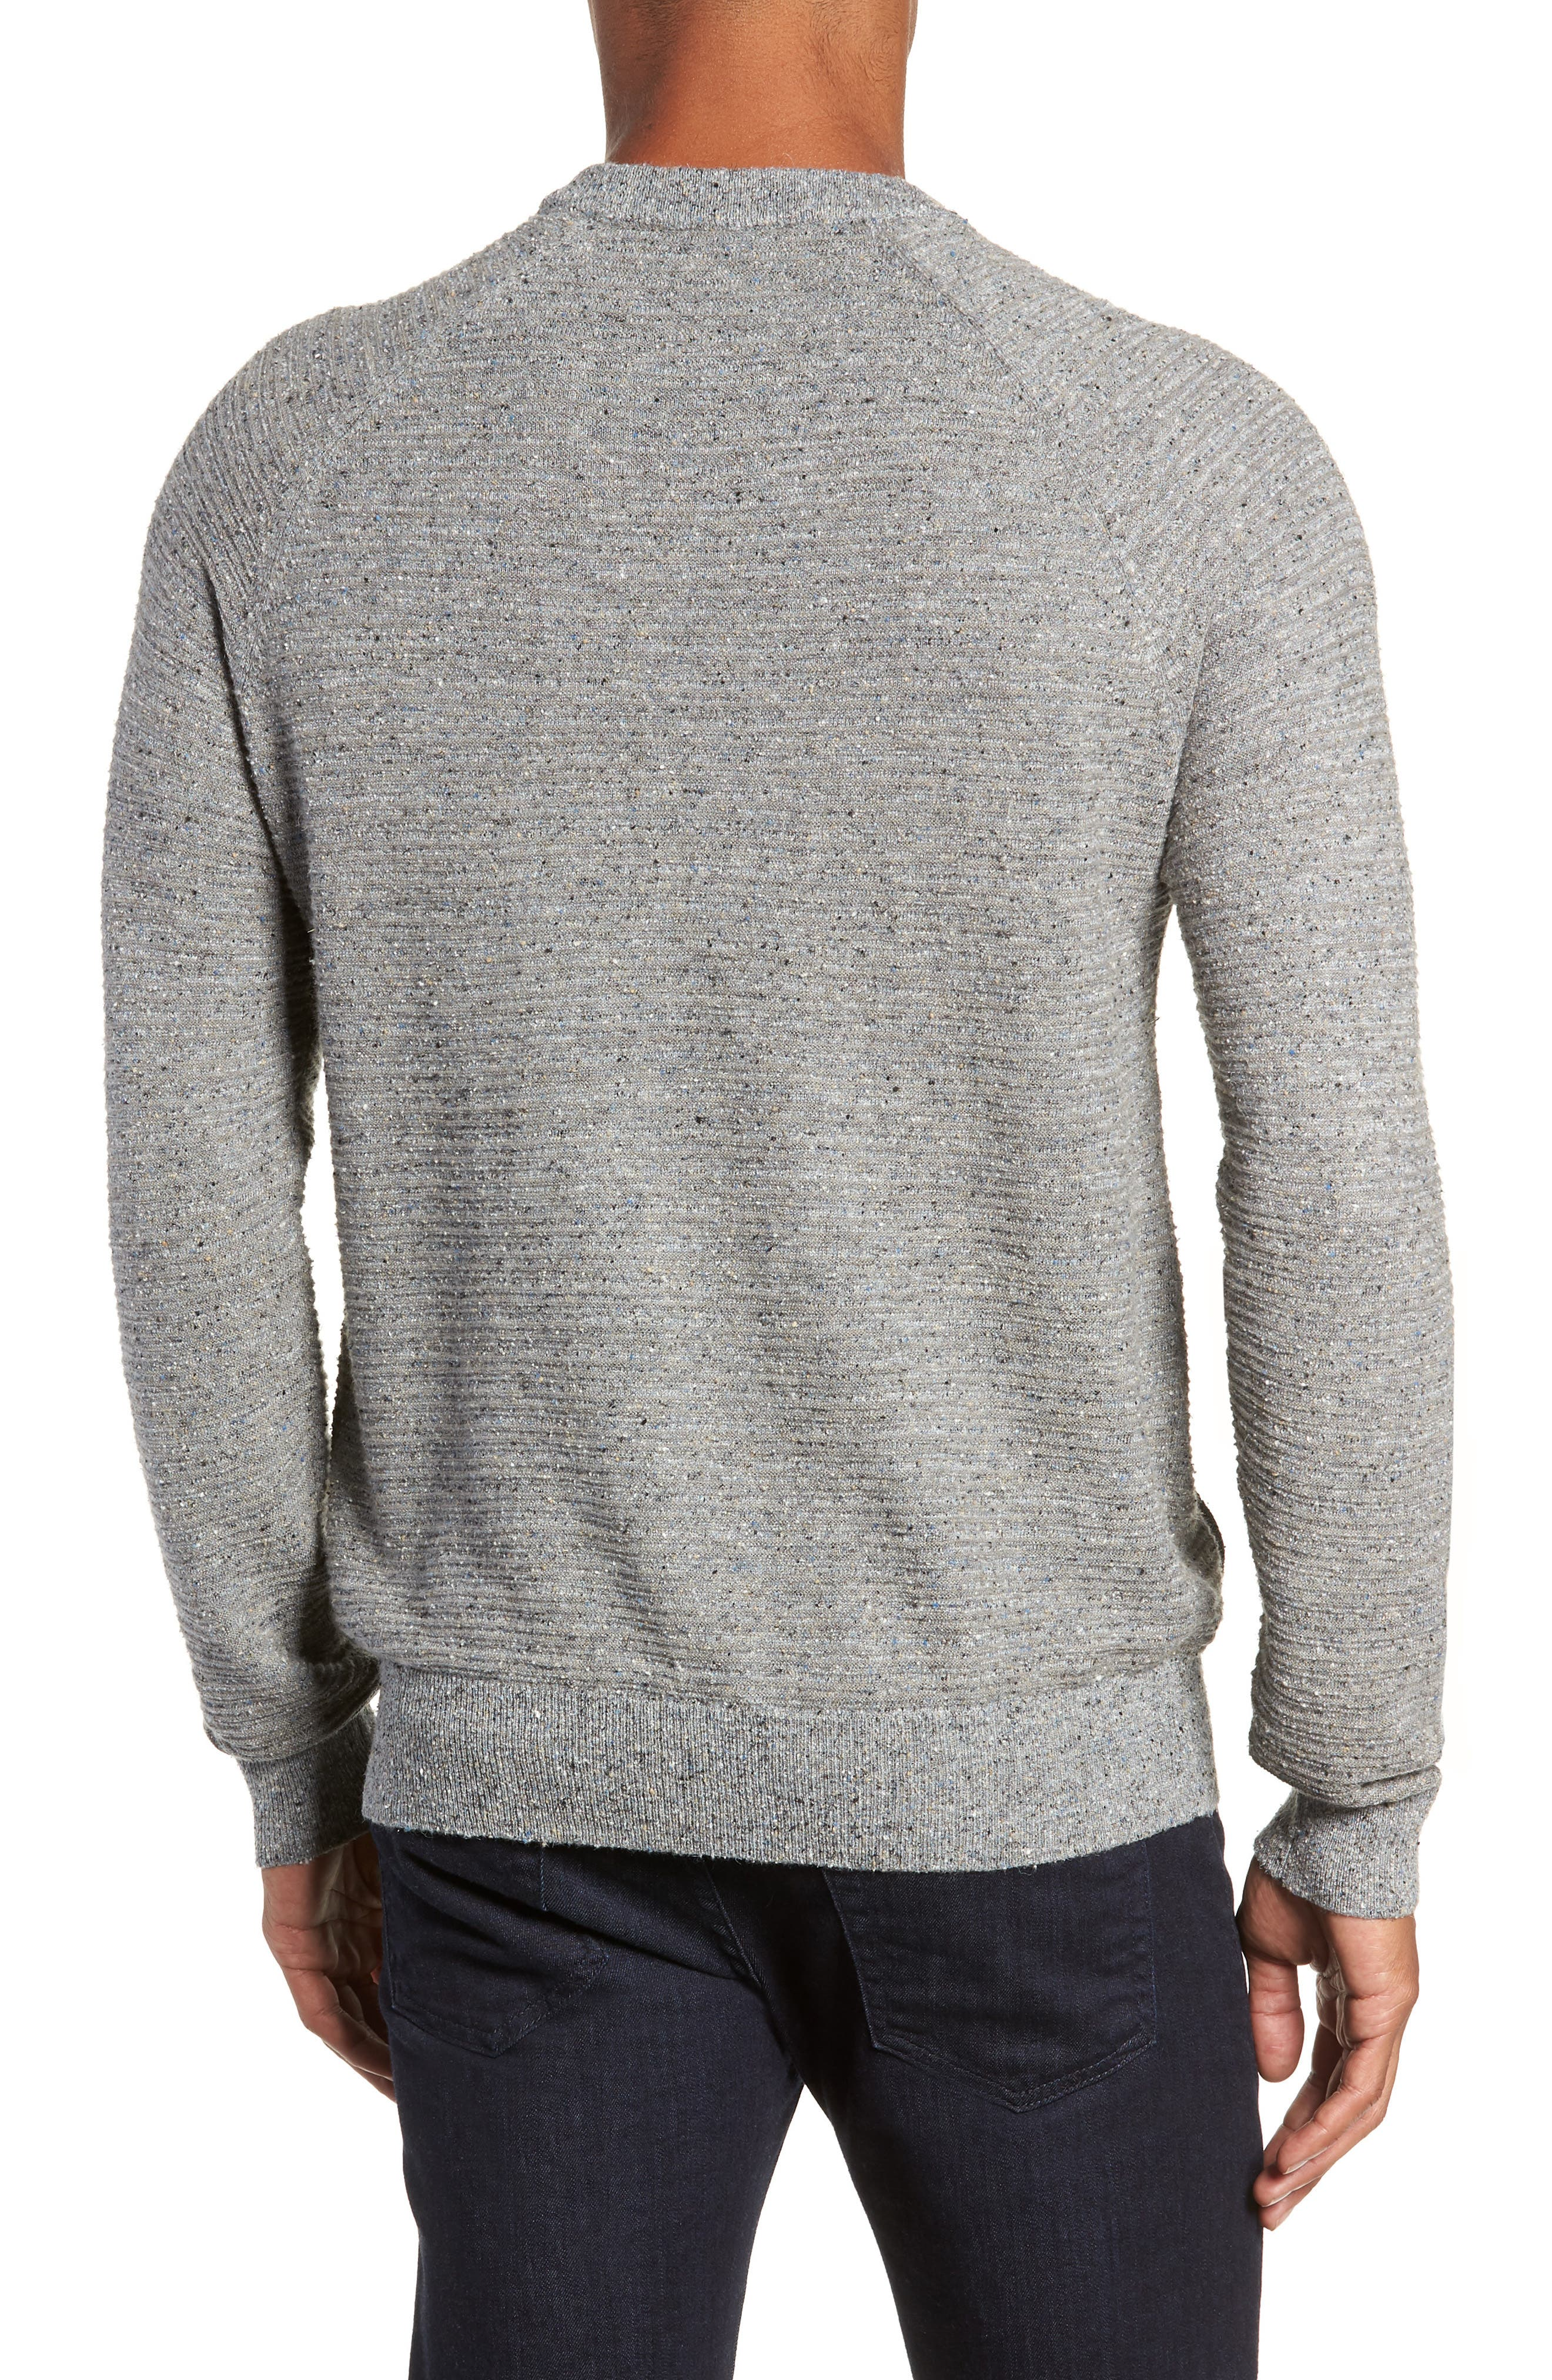 Speckle Stripe Sweater,                             Alternate thumbnail 2, color,                             GREY MIX